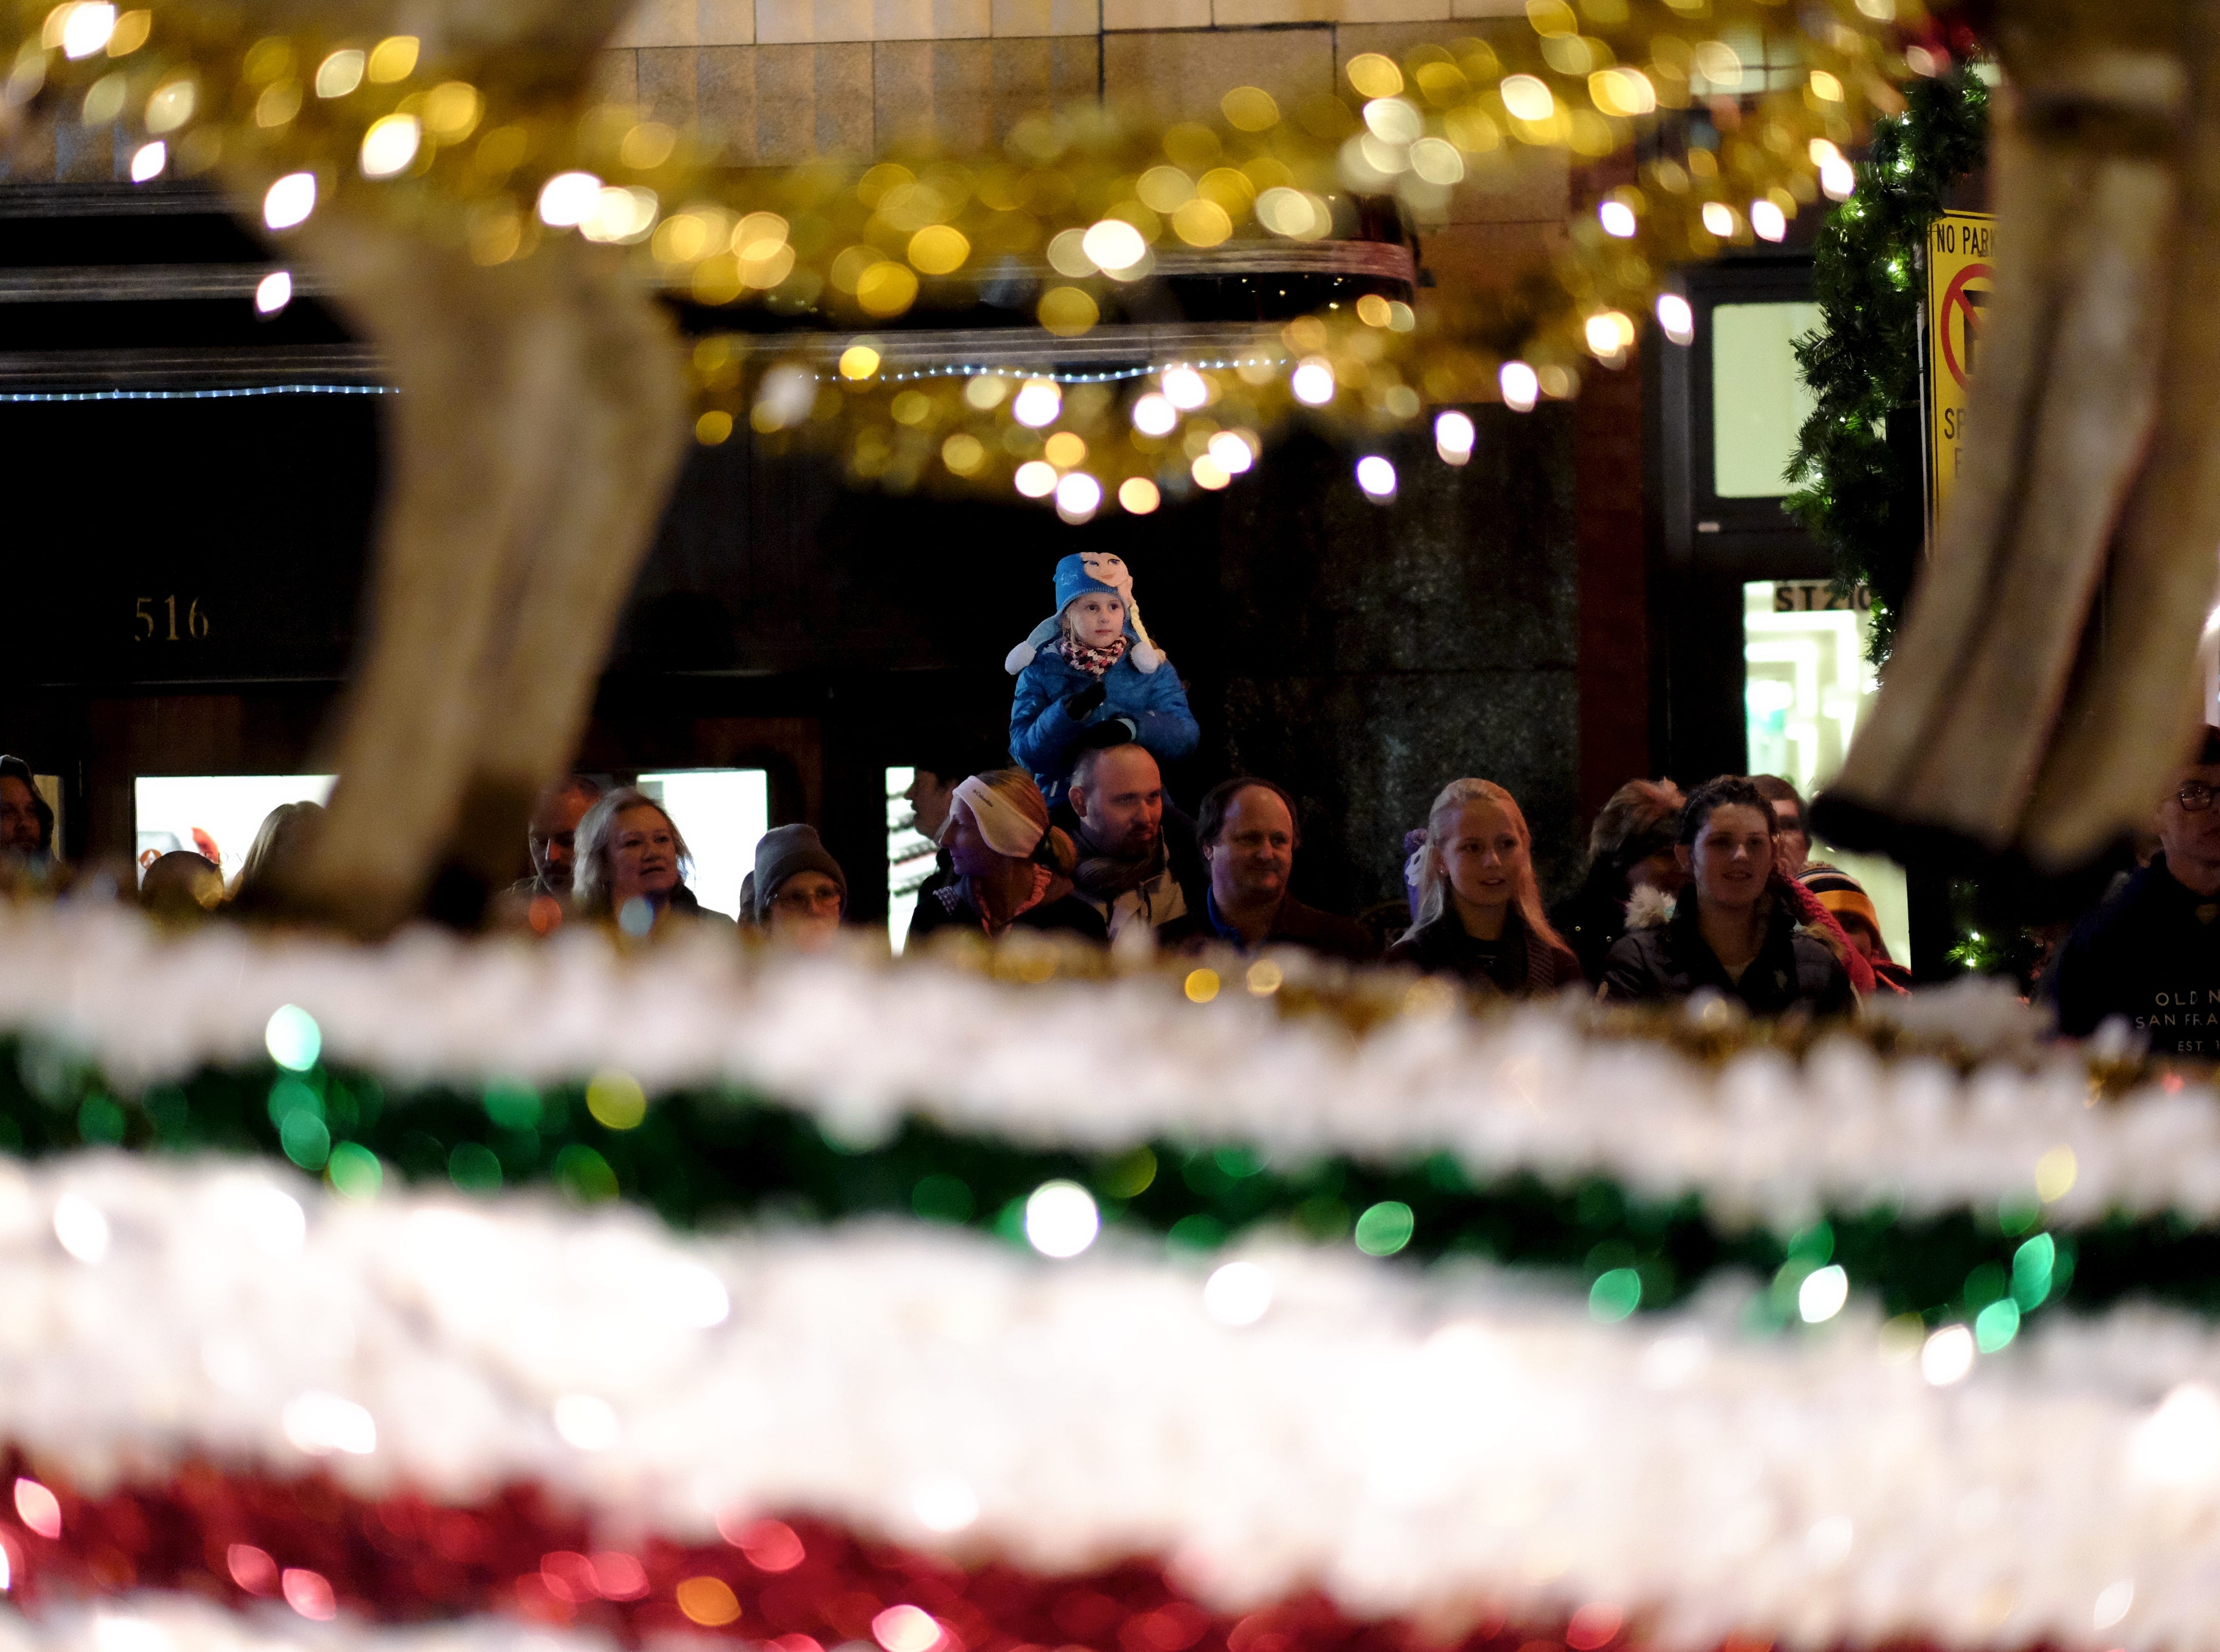 Parade spectators watch as Santa makes an appearance during the 43rd annual WIVK Christmas Parade on Friday, December 4, 2015, in Knoxville.